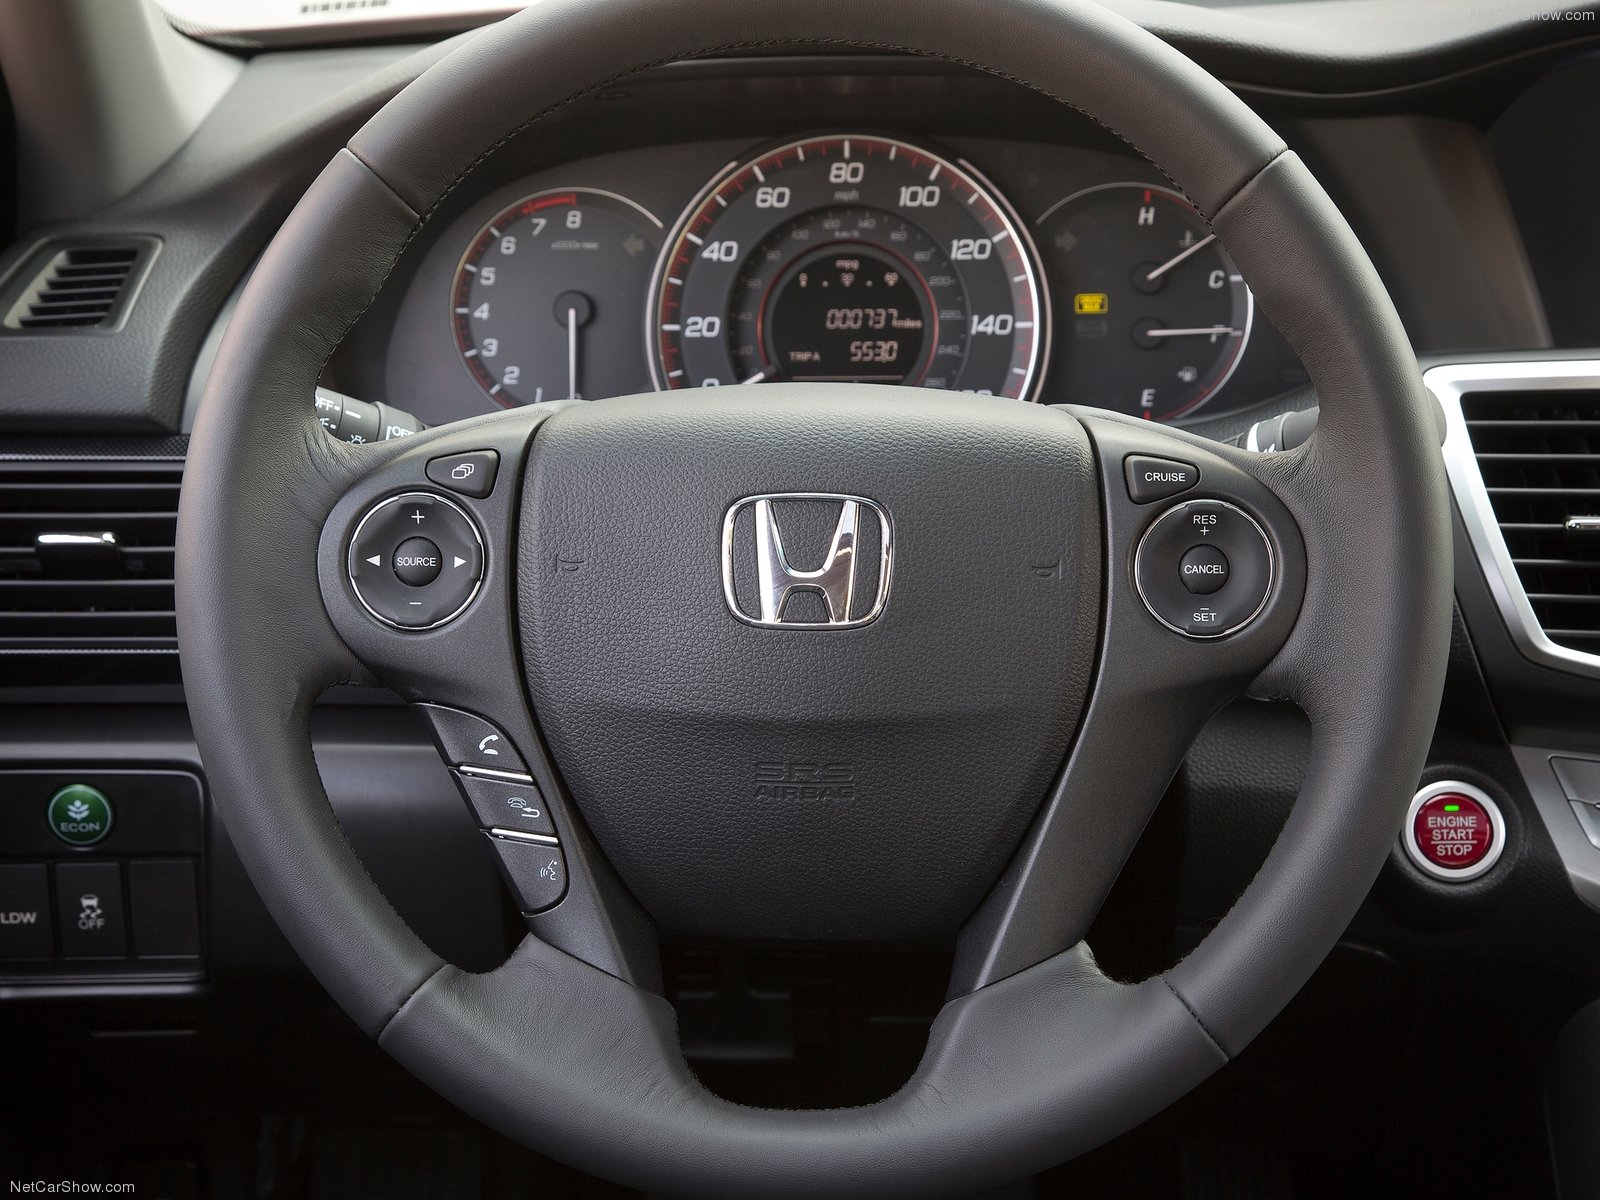 HONDA Accord Coupe specs & photos - 2012, 2013, 2014, 2015 ... Honda Accord 2012 Coupe Interior